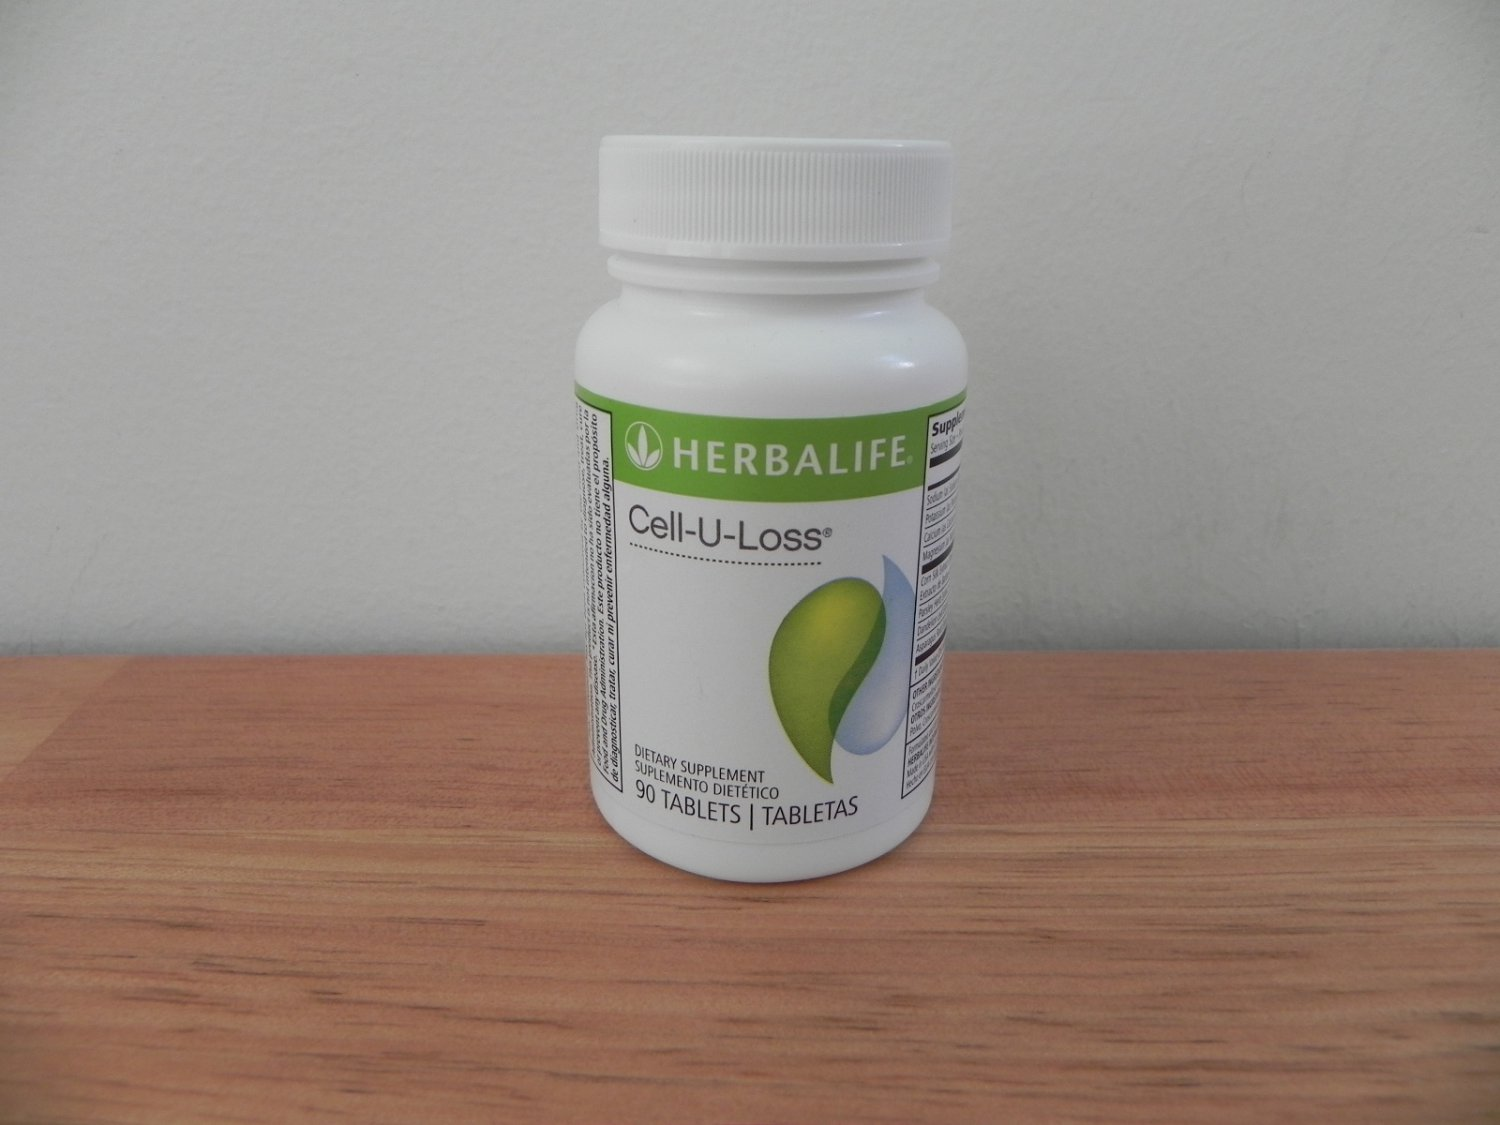 Herbalife Cell-U-Loss celluloss 2013